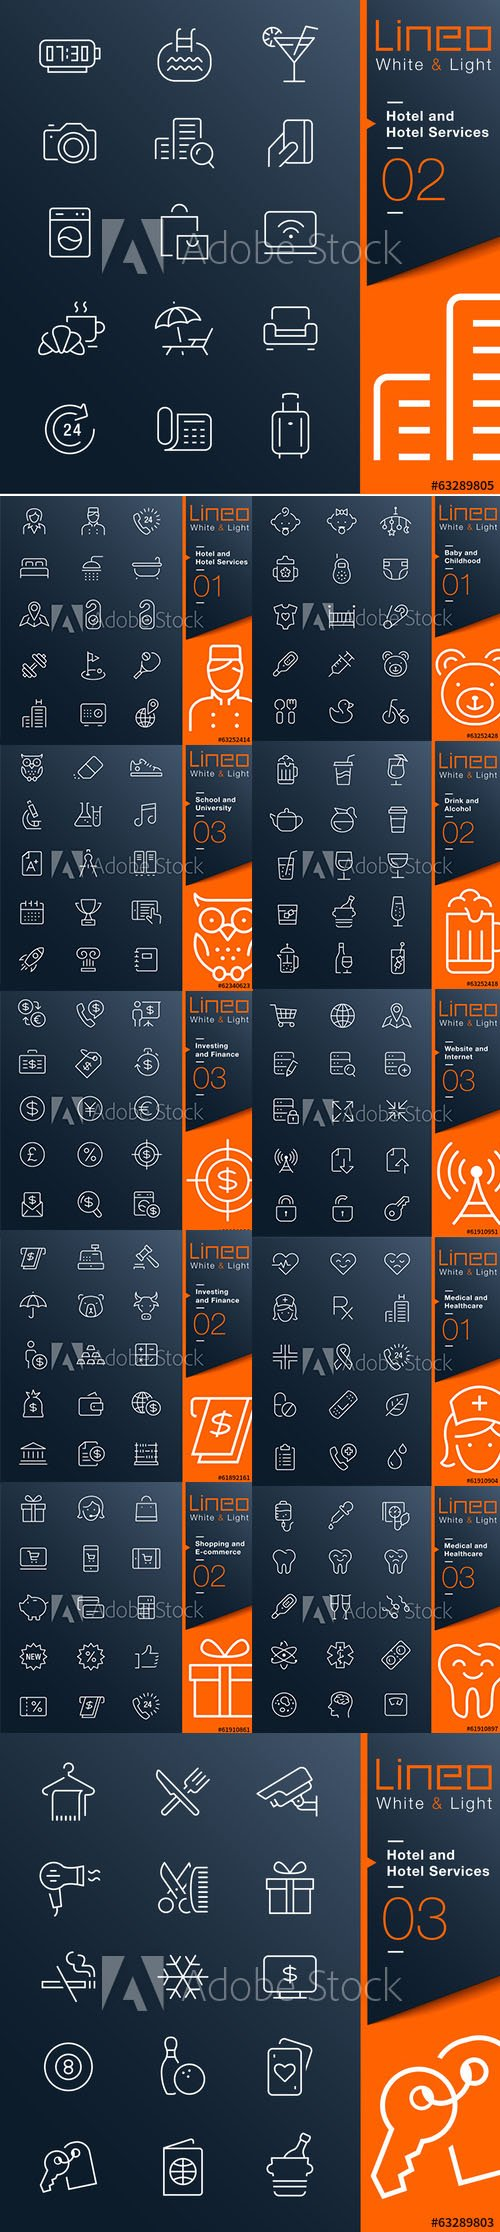 Lineo White and Light Outline Icons Vol 3